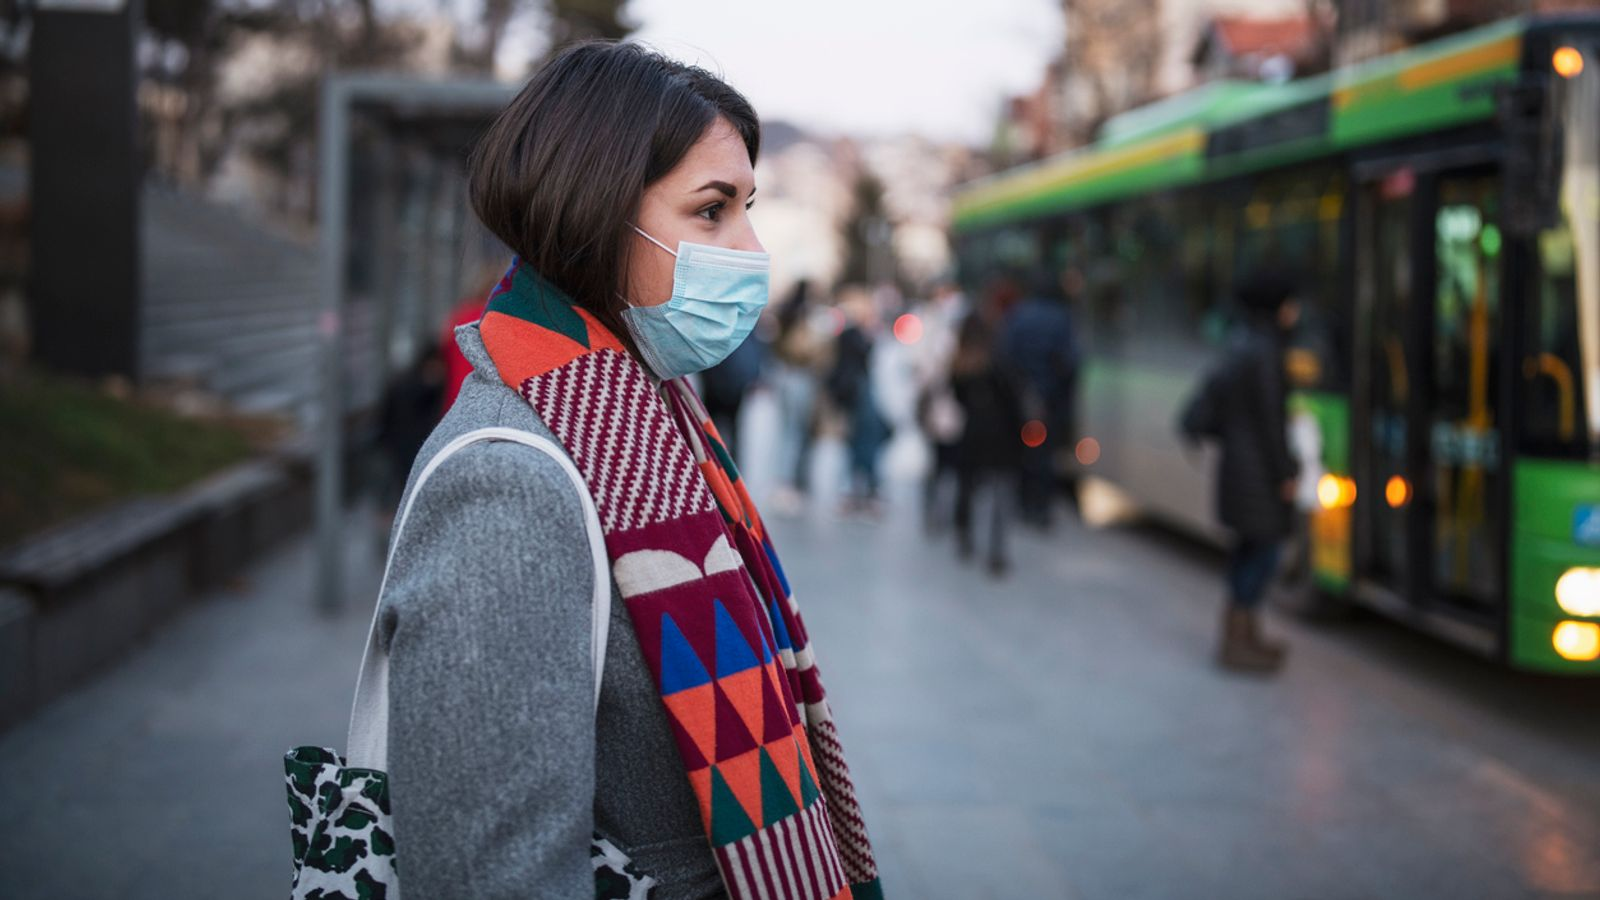 Doctor warns how air pollution can make severe COVID-19 even worse